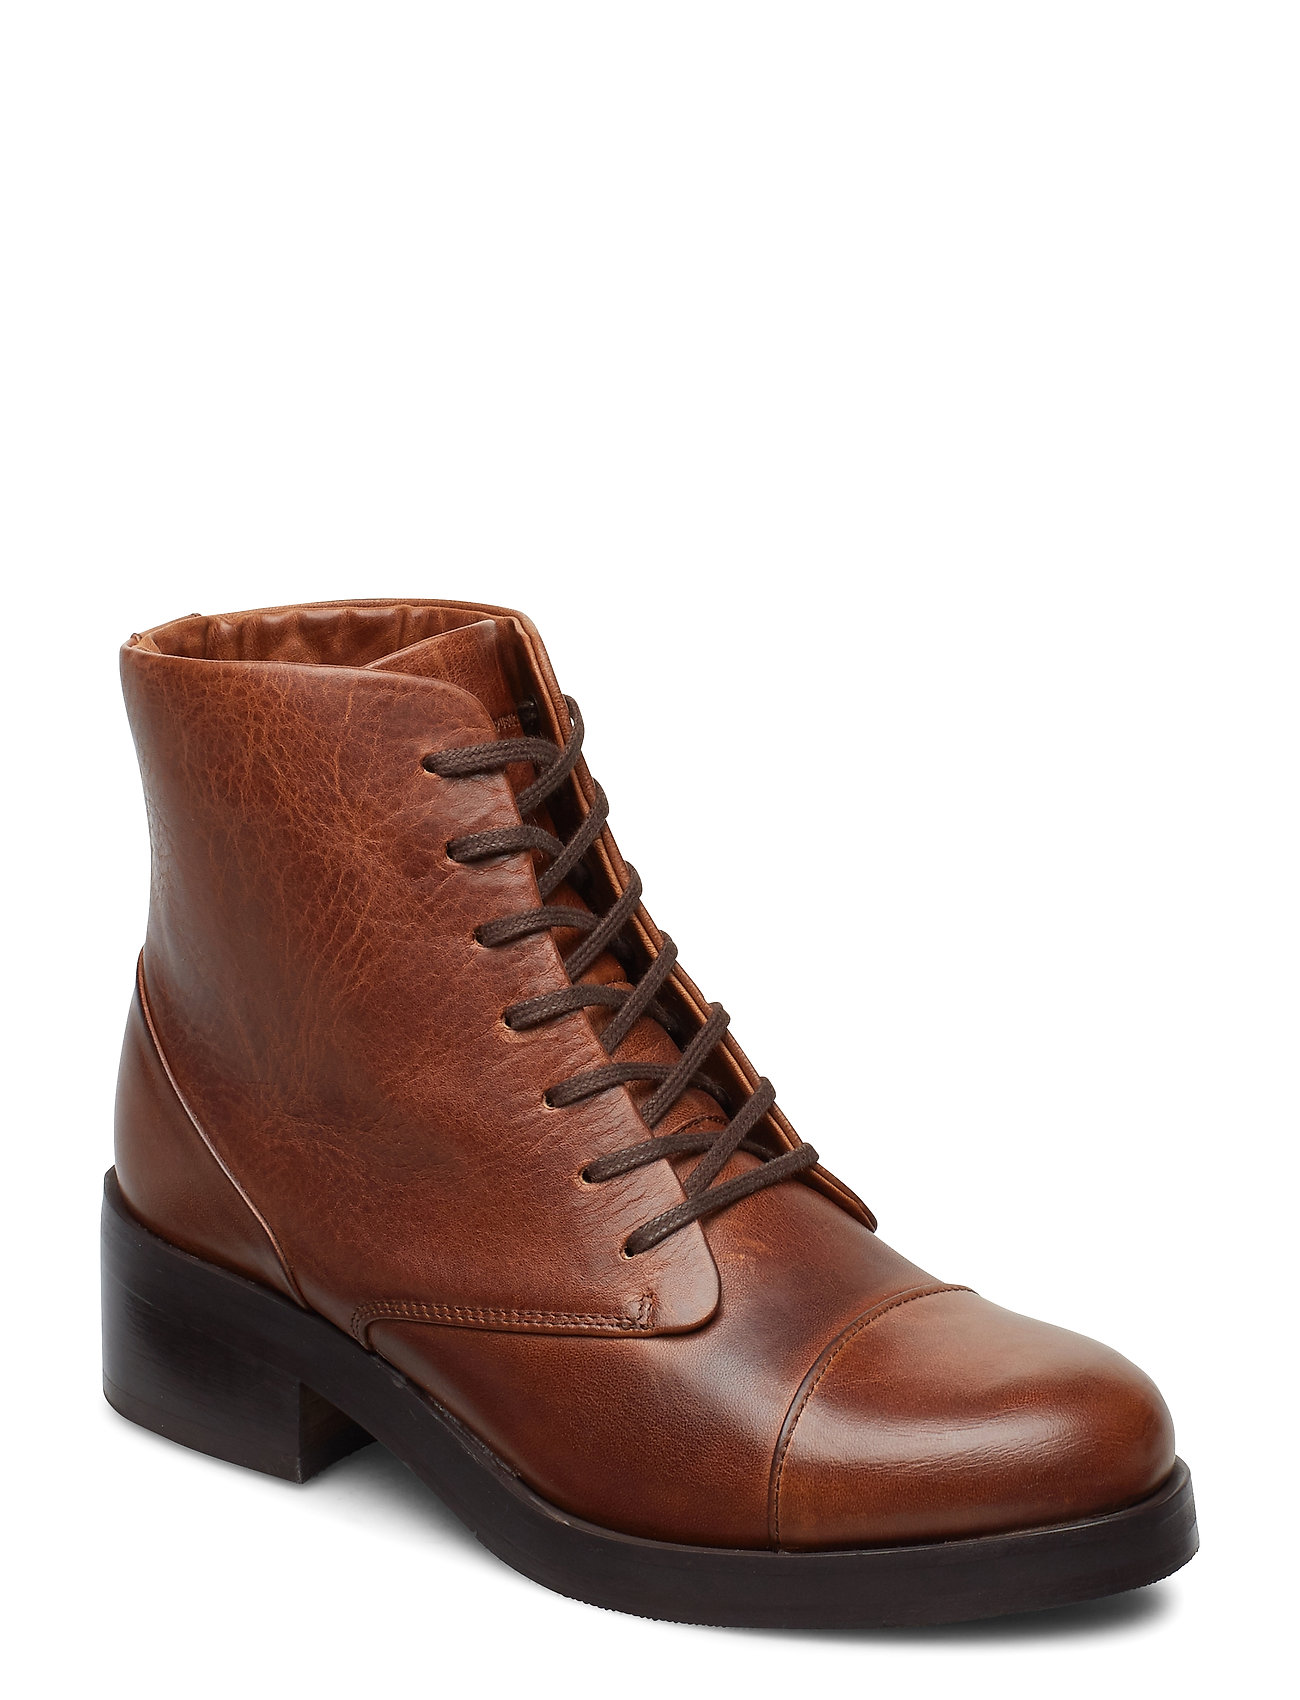 Image of District Lace Up Boot Shoes Boots Ankle Boots Ankle Boot - Heel Brun Royal RepubliQ (3433794275)